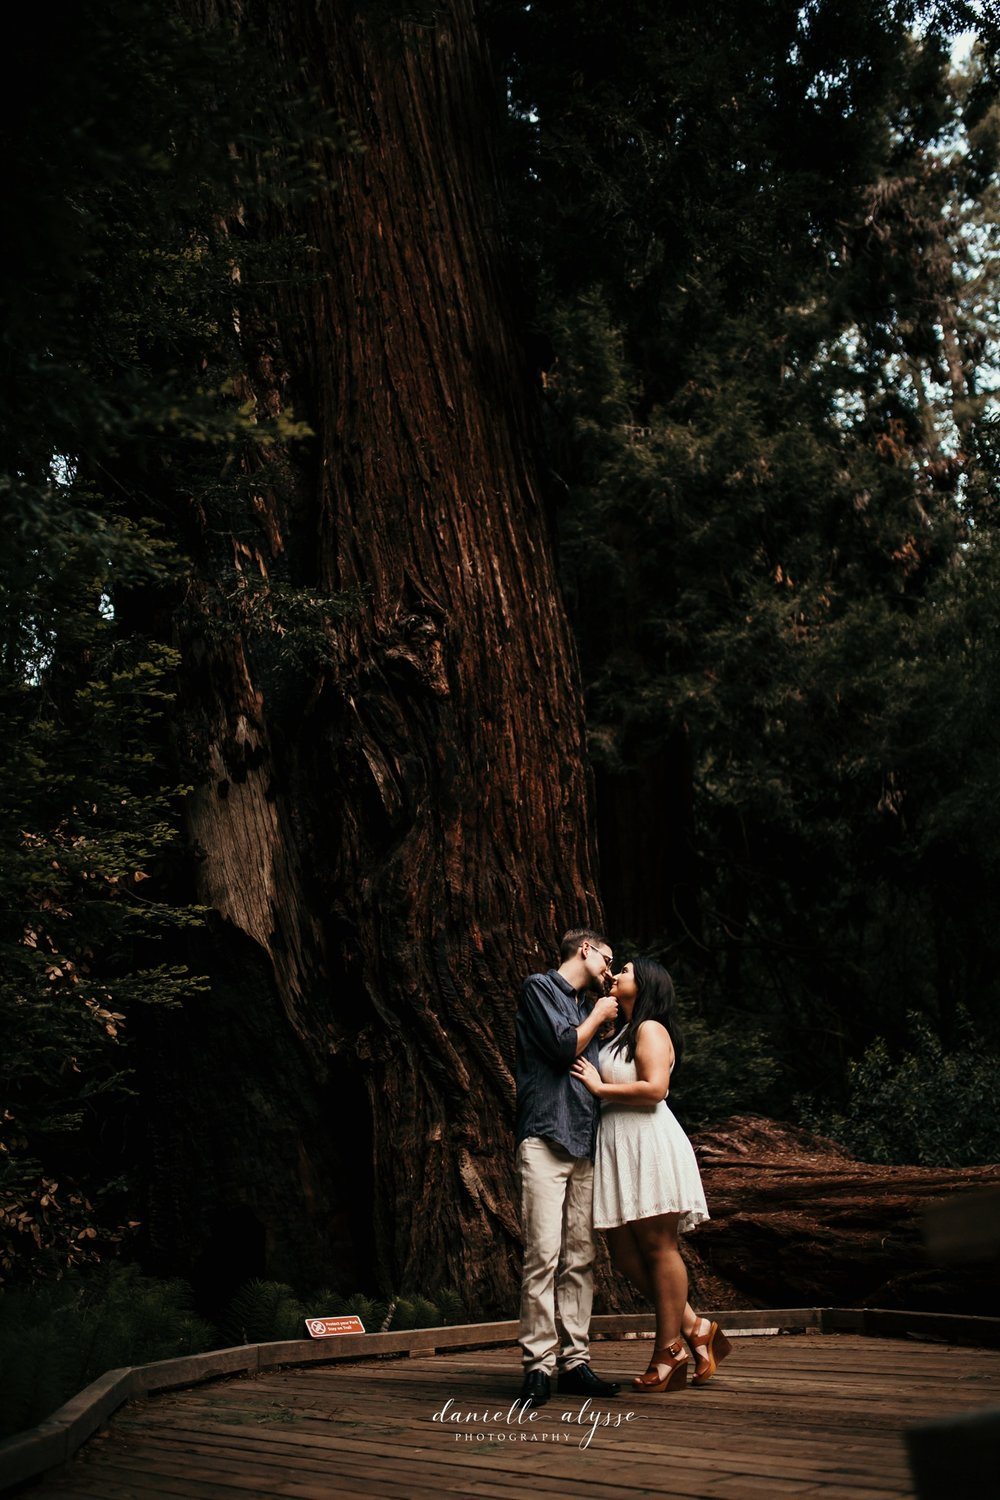 180503_engagement_bianca_muir_woods_mill_valley_danielle_alysse_photography_bay_area_photographer_blog_68_WEB.jpg